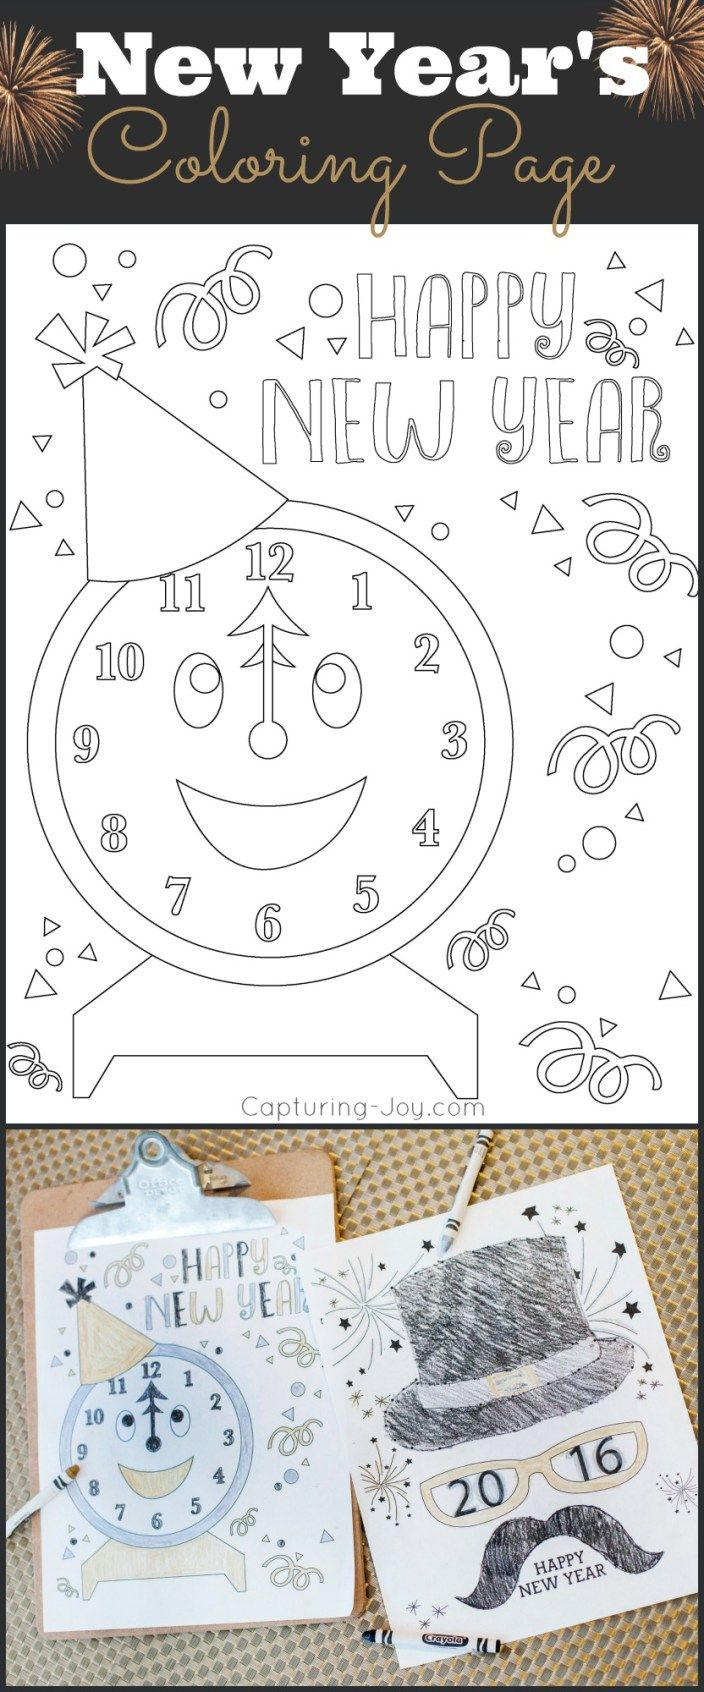 happy holidays new years eve coloring pages tatertots and jello free printable coloring pageswinter